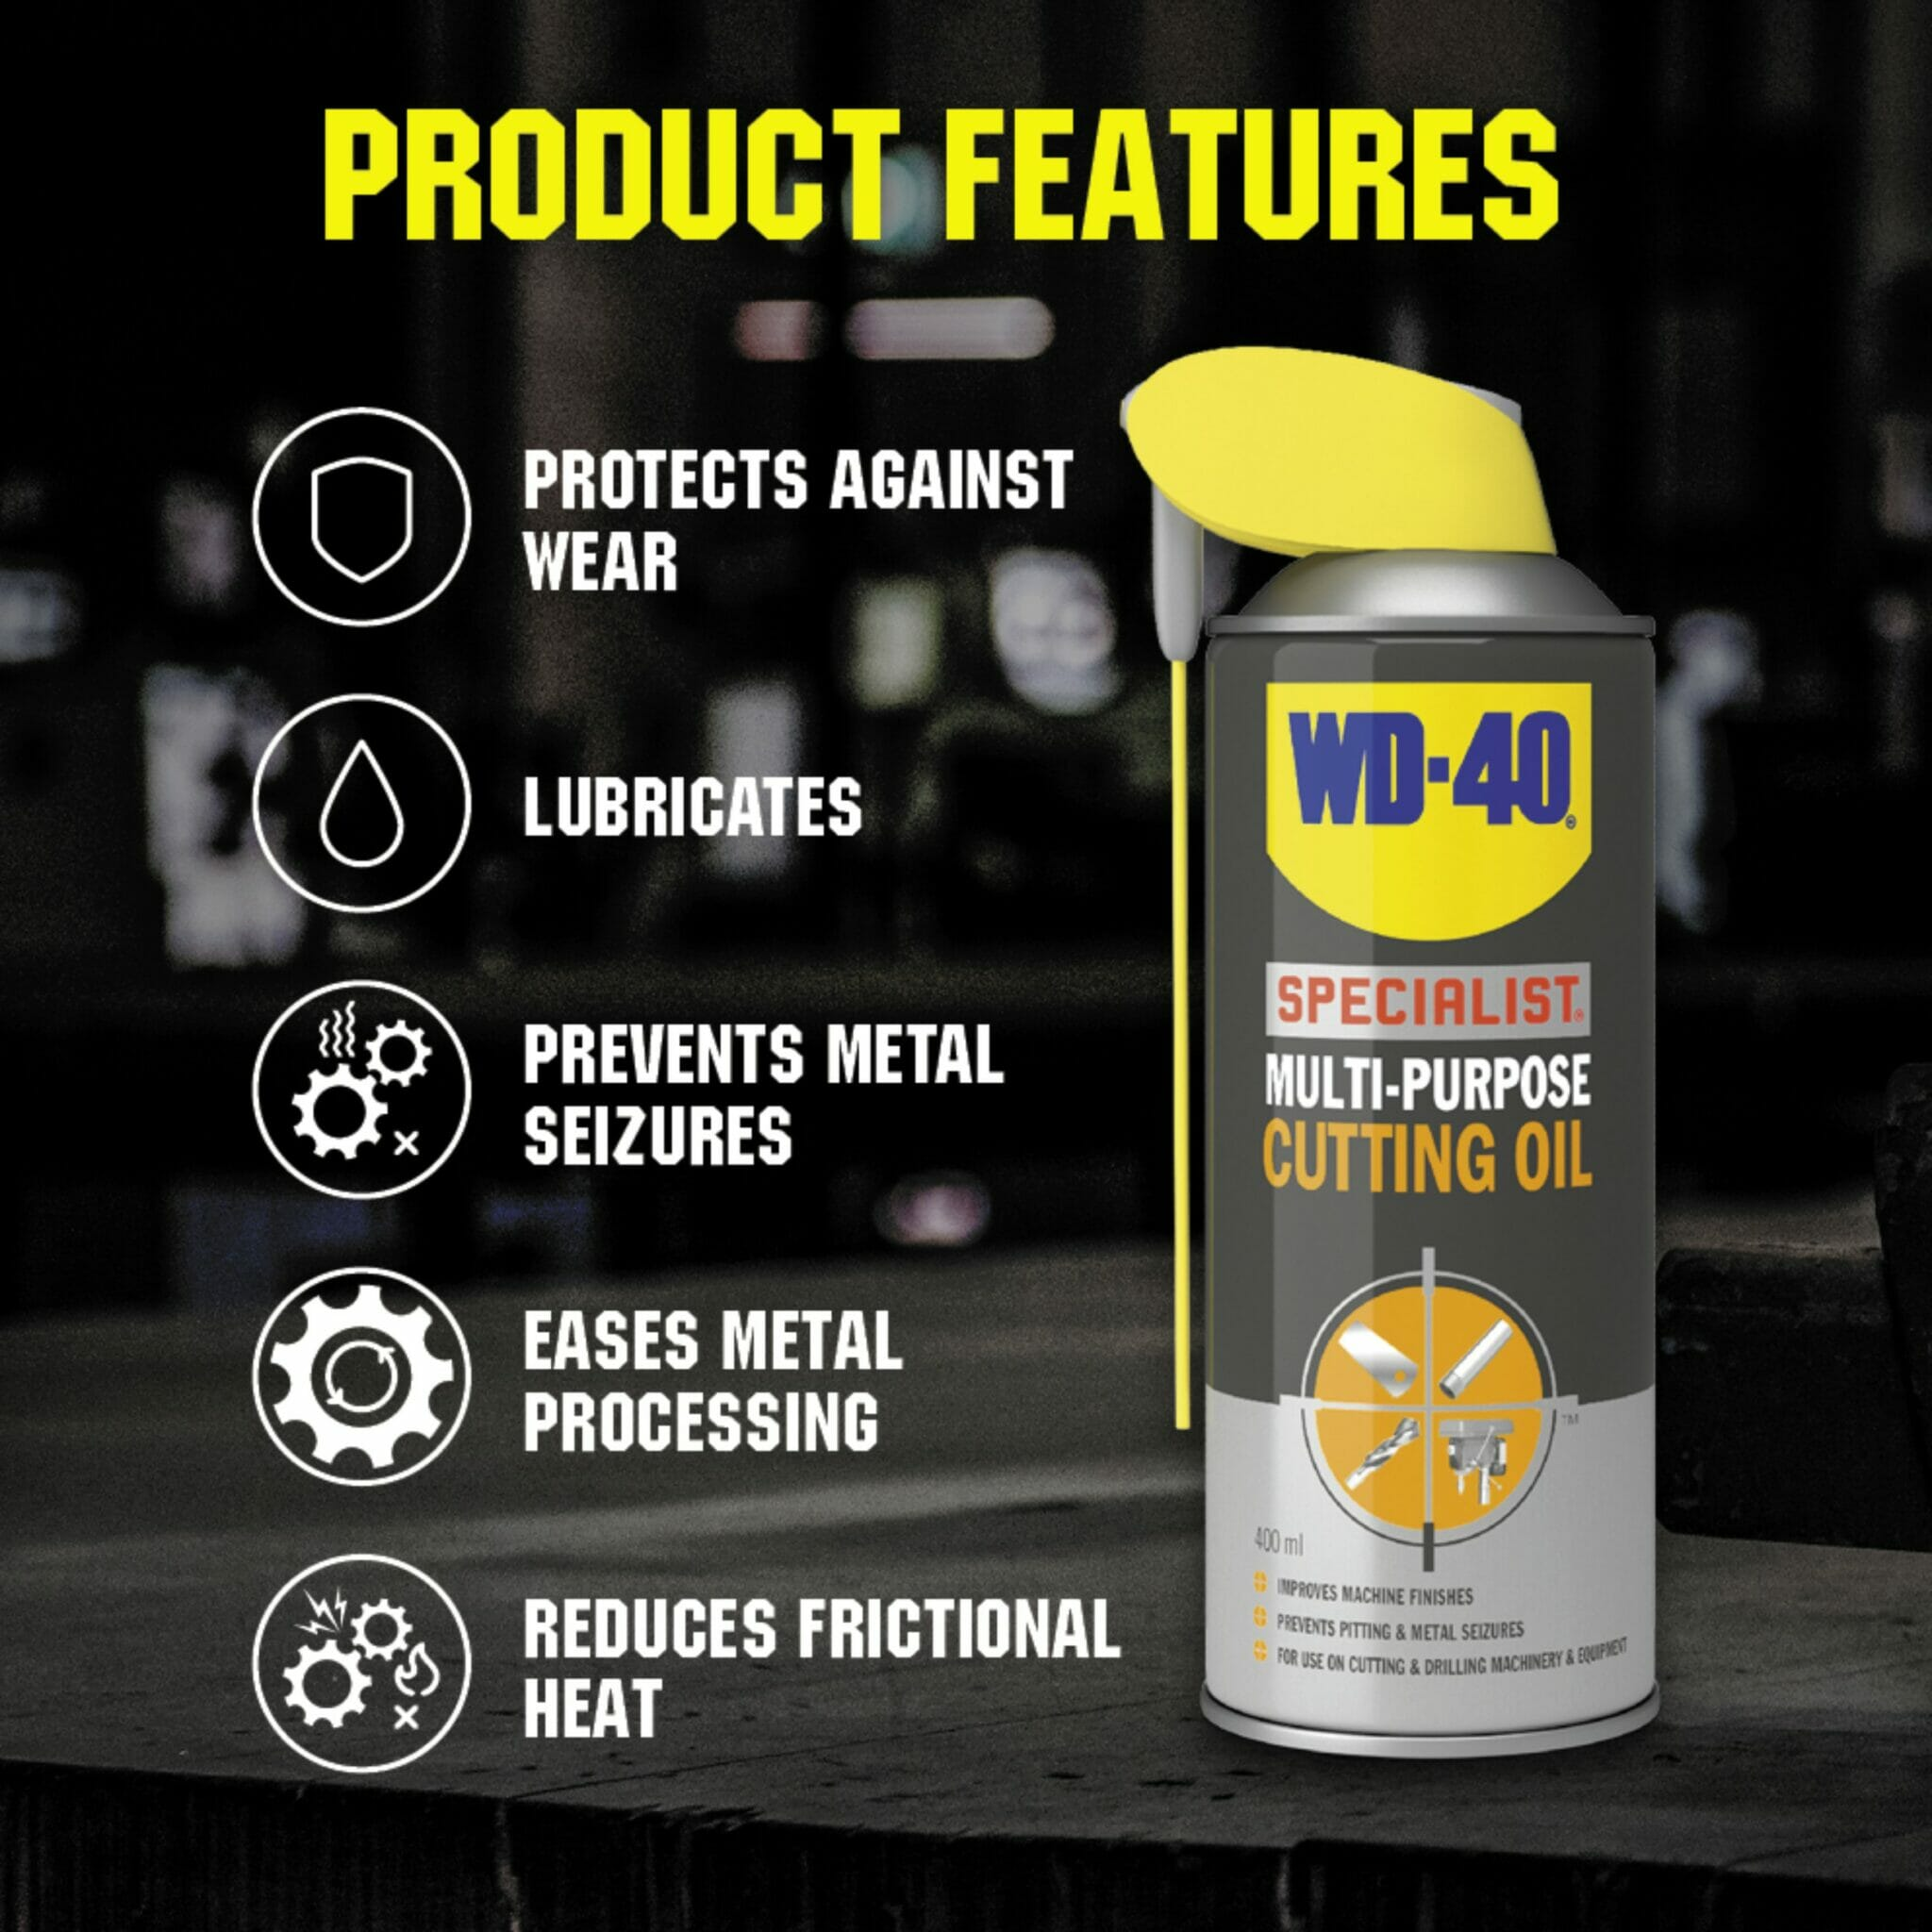 uk wd40 specialist multi purpose cutting oil 400ml product features lifestyle background